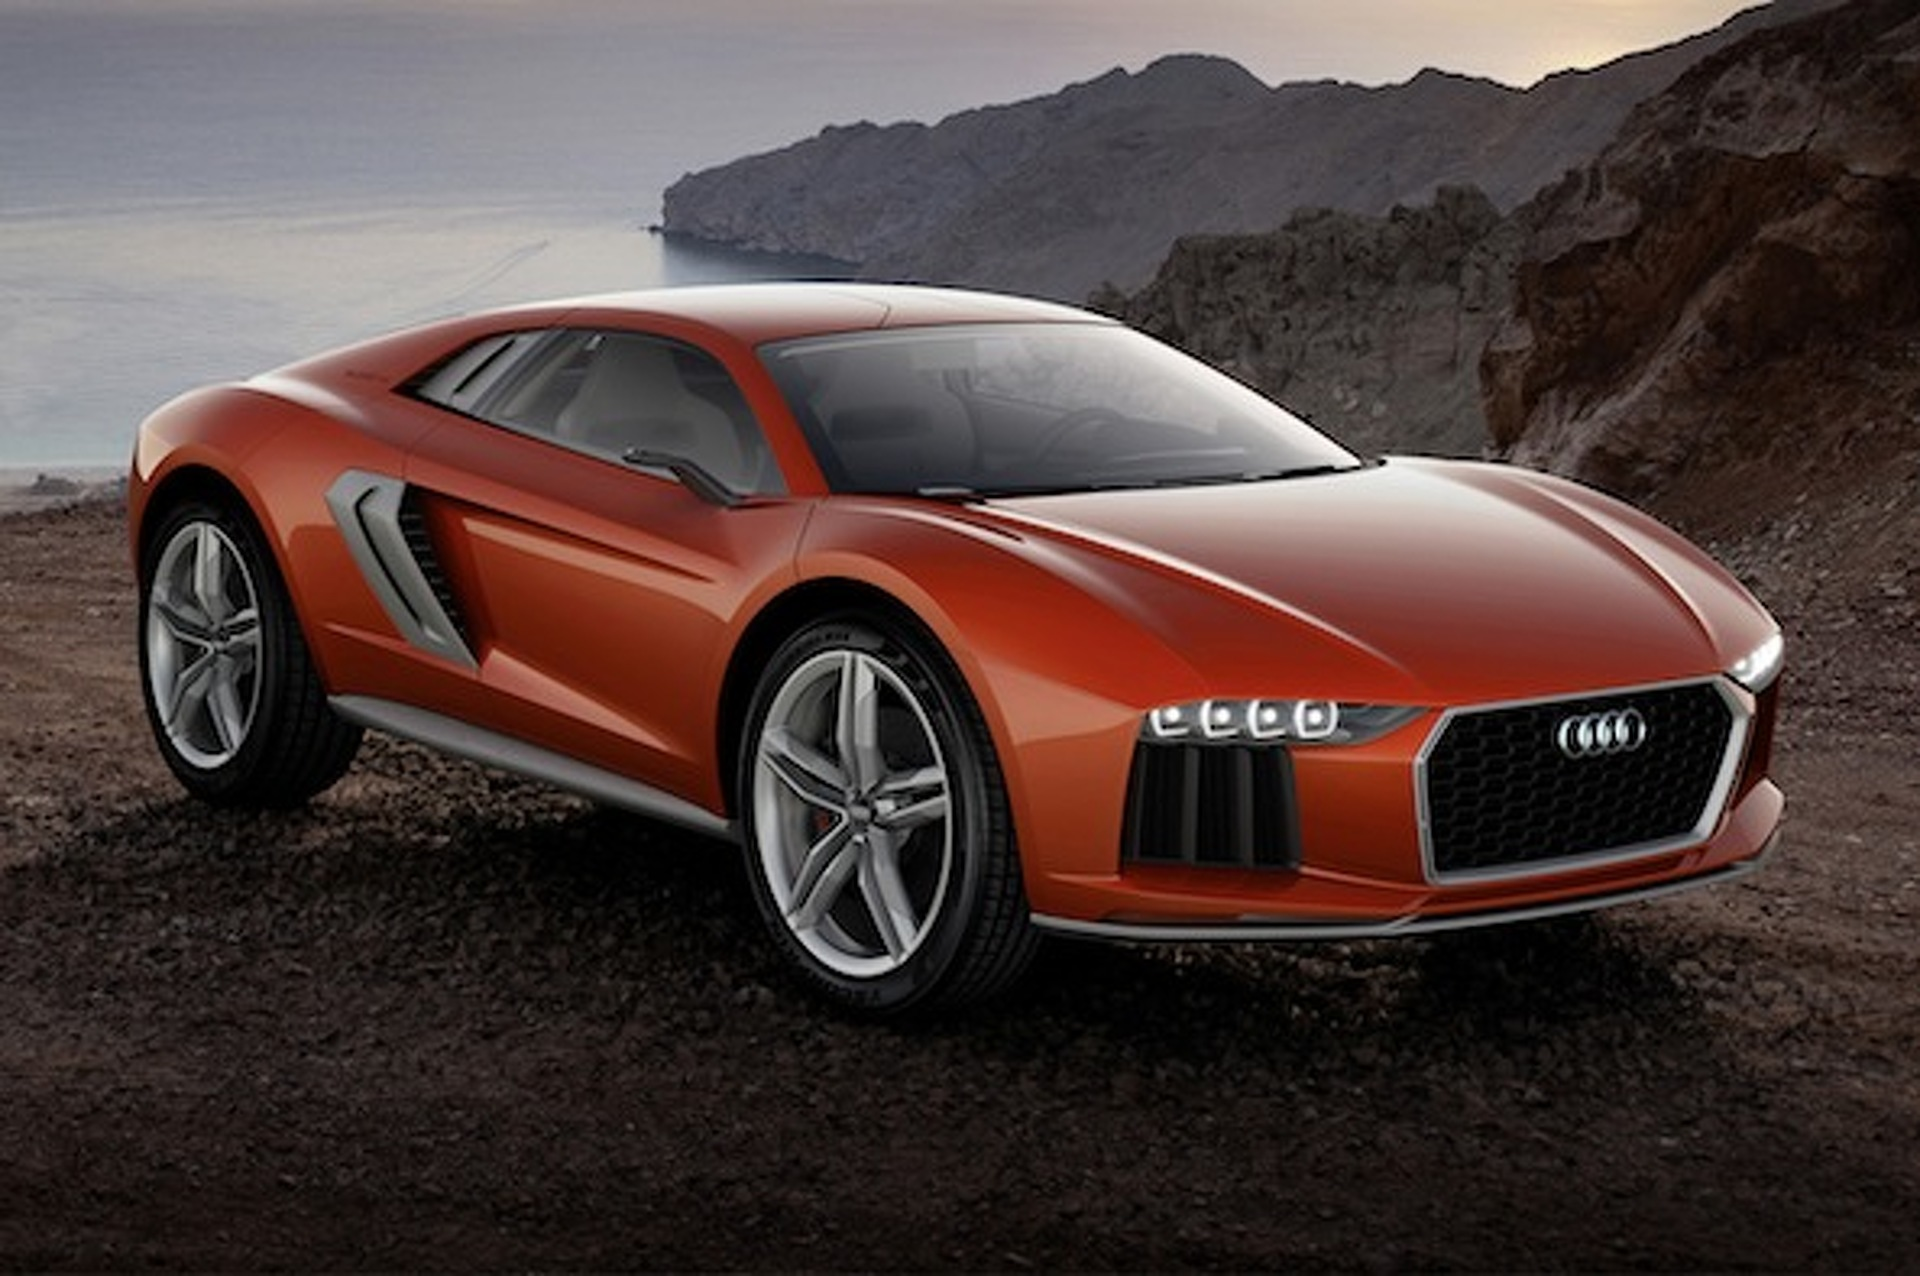 2015 Audi R8: 4 Things You Need to Know